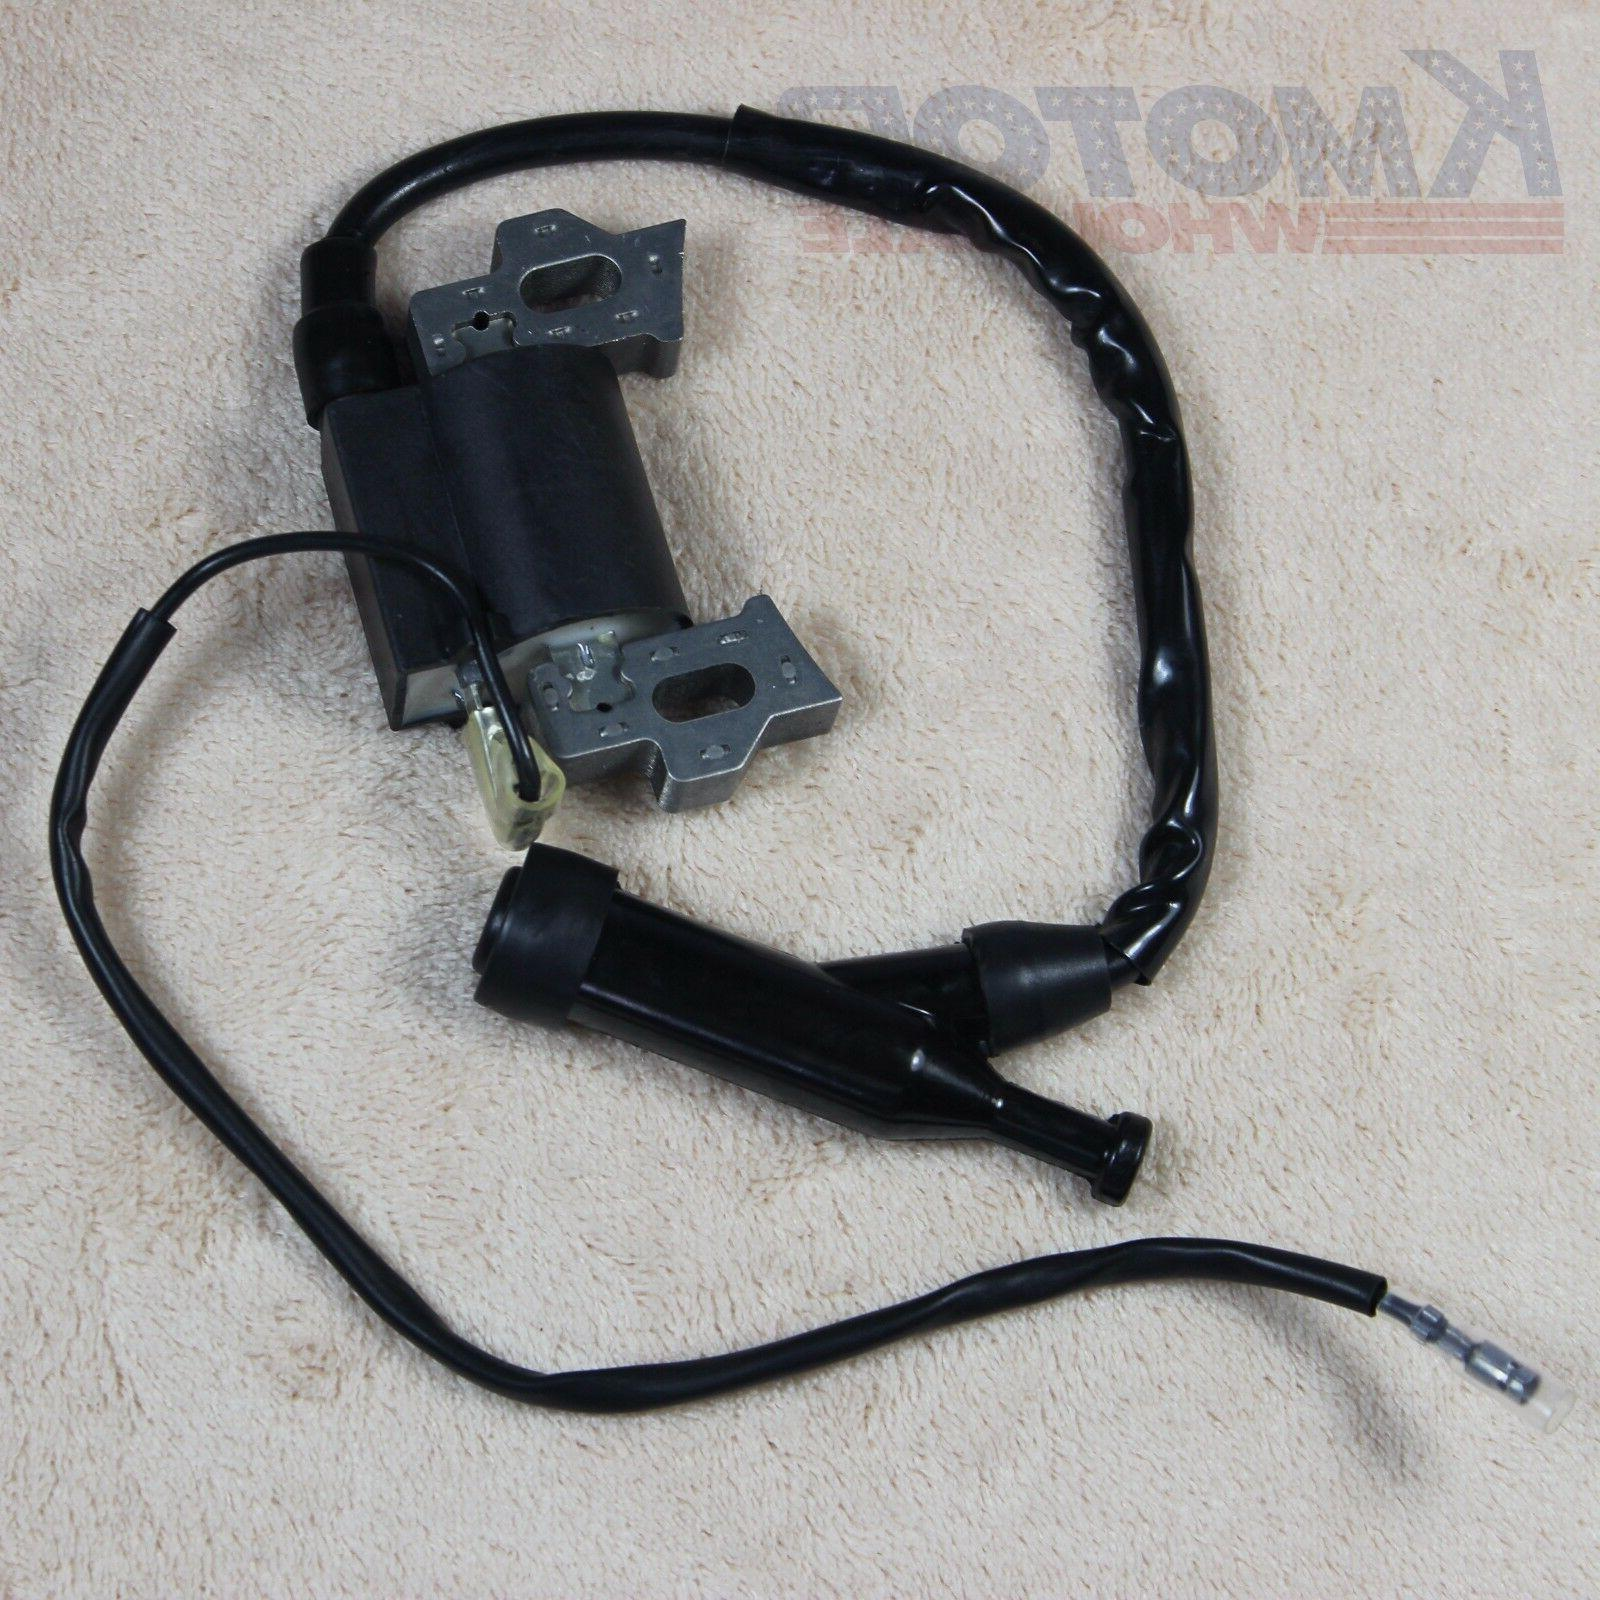 Ignition Magneto Parts For GX200 6.5HP GX160 5.5HP GX110 GX140